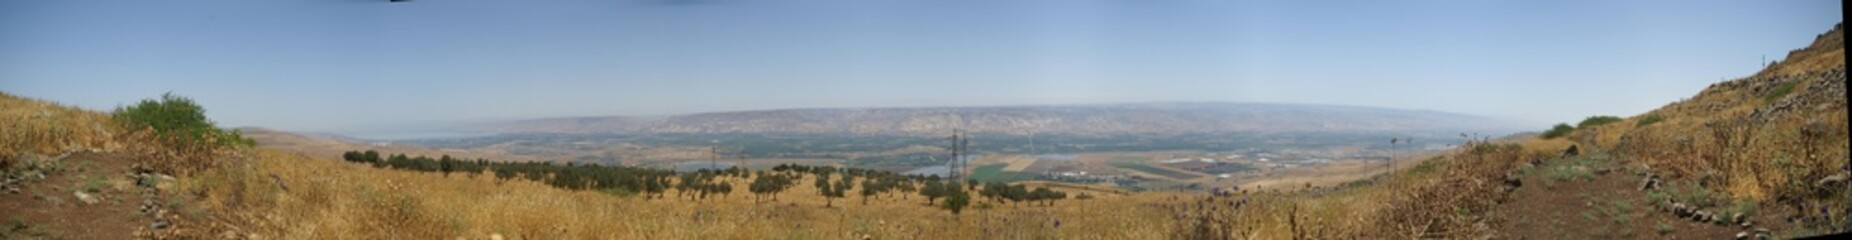 Mountains and nature in Galilee, Israel